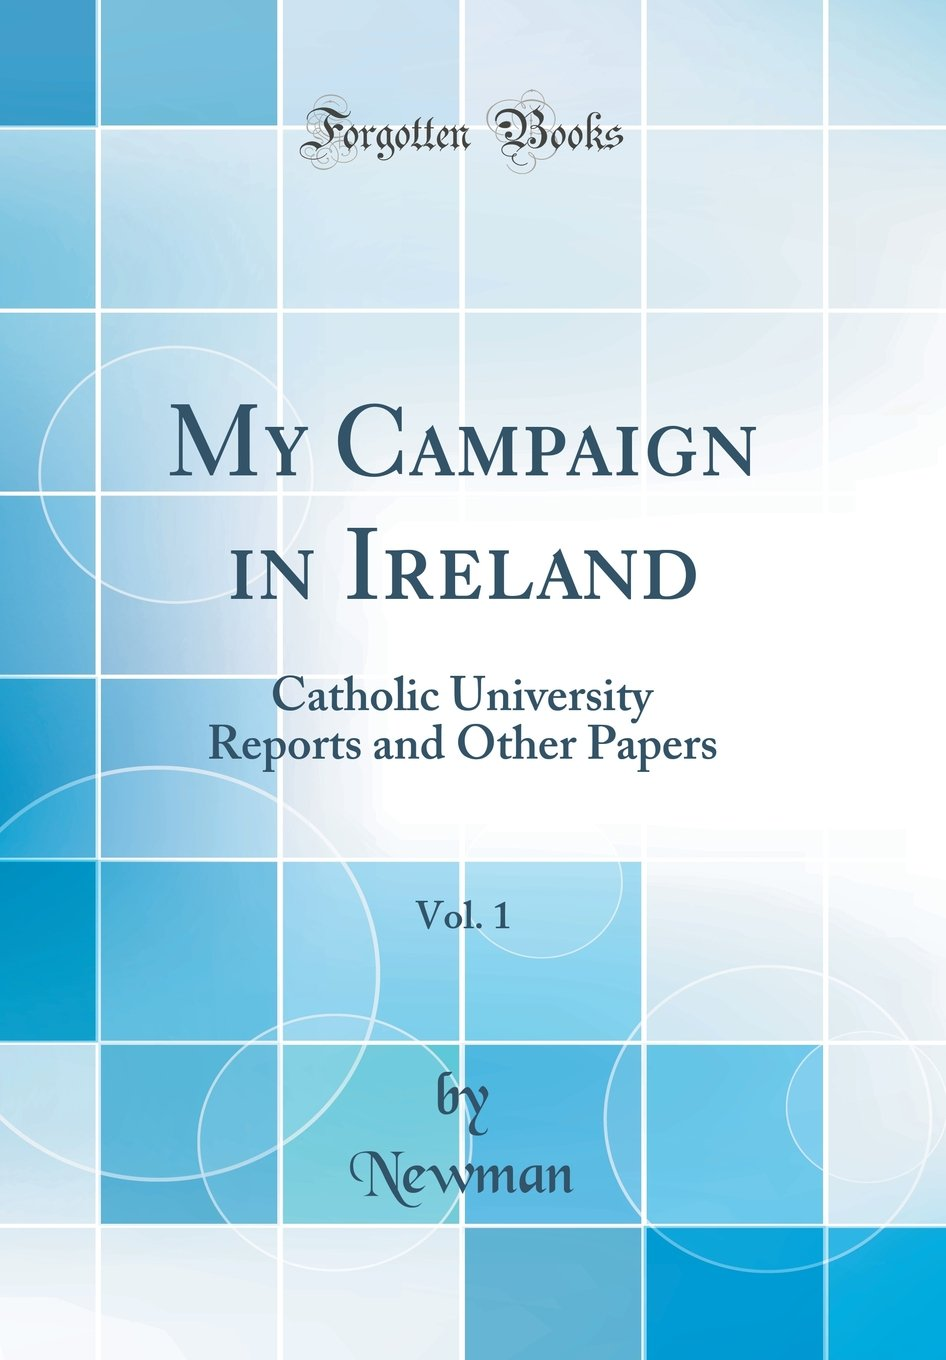 My Campaign in Ireland, Vol. 1: Catholic University Reports and Other Papers (Classic Reprint) PDF